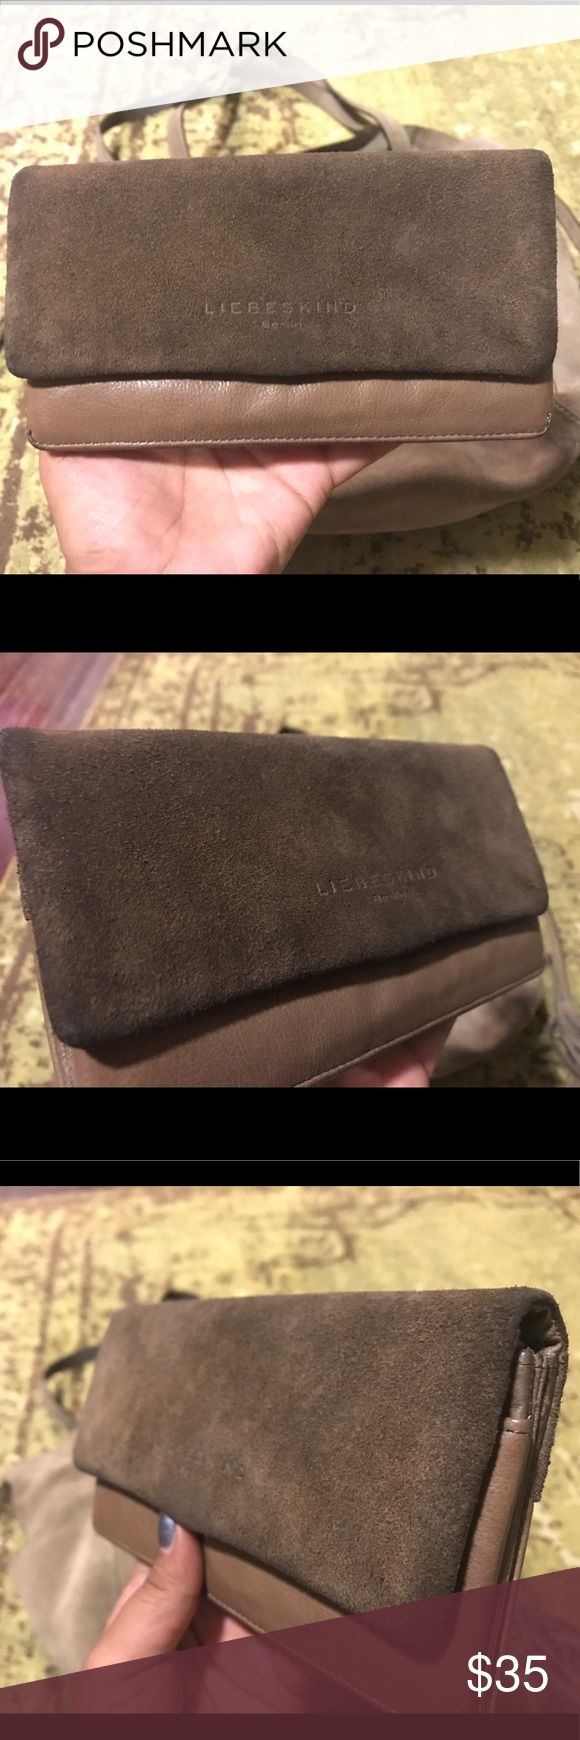 """Liebeskind Wallet Liebeskind (""""lovechild"""" in German) wallet is in a great condition! Needs a cleaning possibly but there are no tears, scratches, or holes in the leather. MK purse is for sale in a different listing. Liebeskind Bags Wallets"""